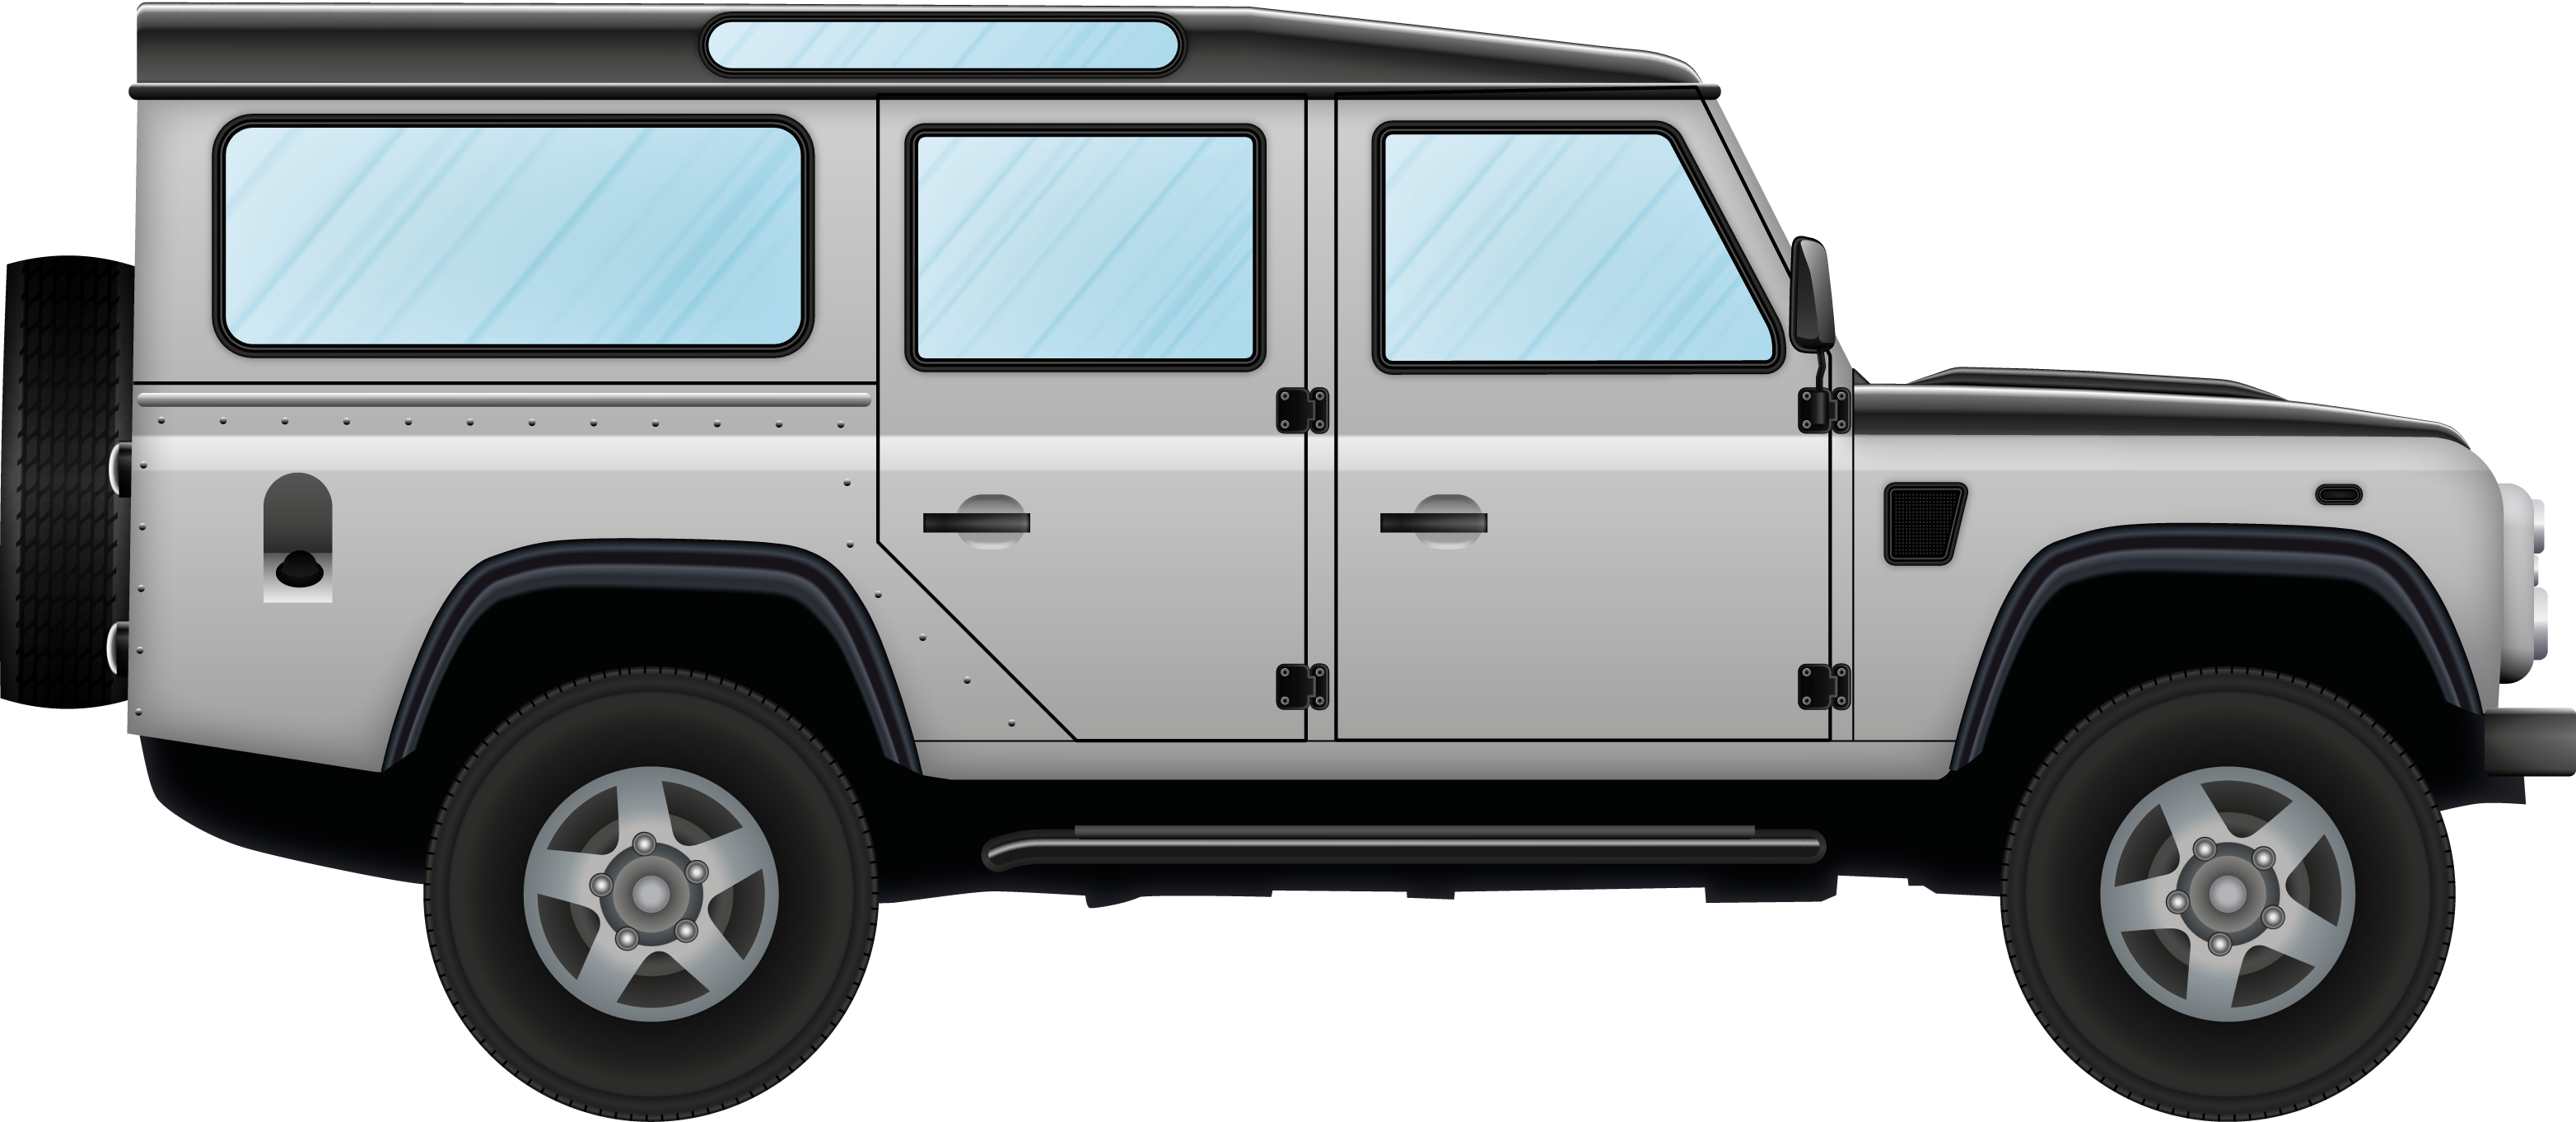 banner freeuse stock Land rover png image. 4 wheel drive clipart